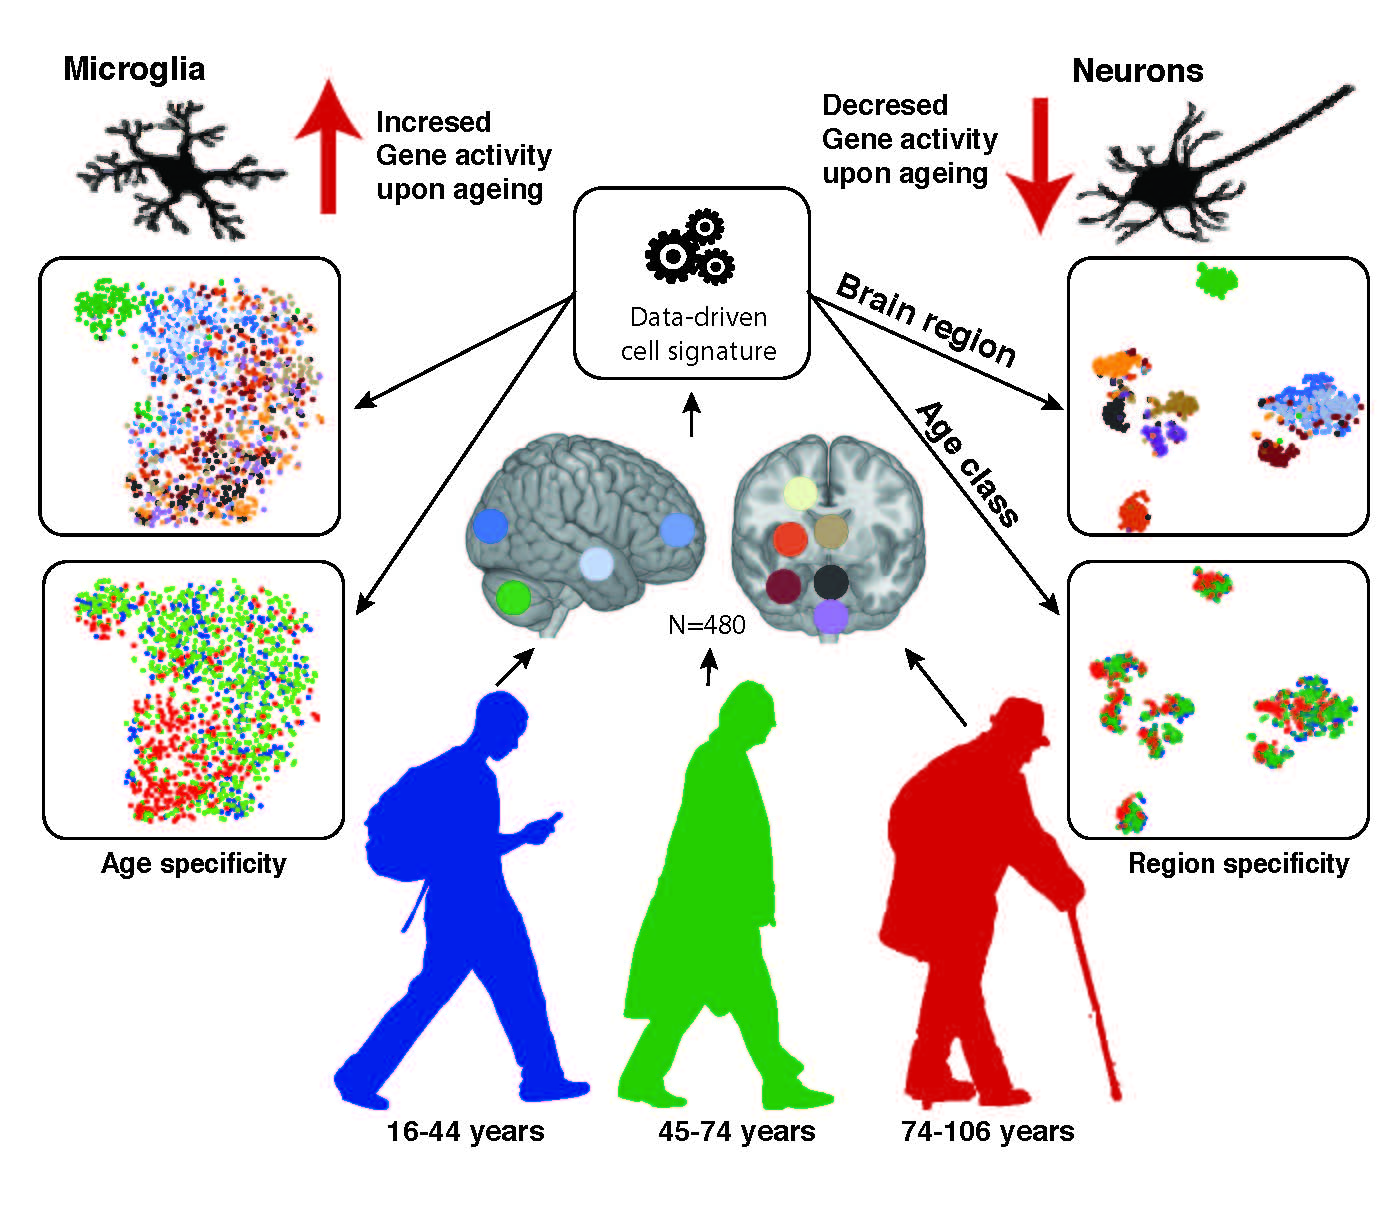 Glia Not Neurons Are Most Affected By Brain Aging